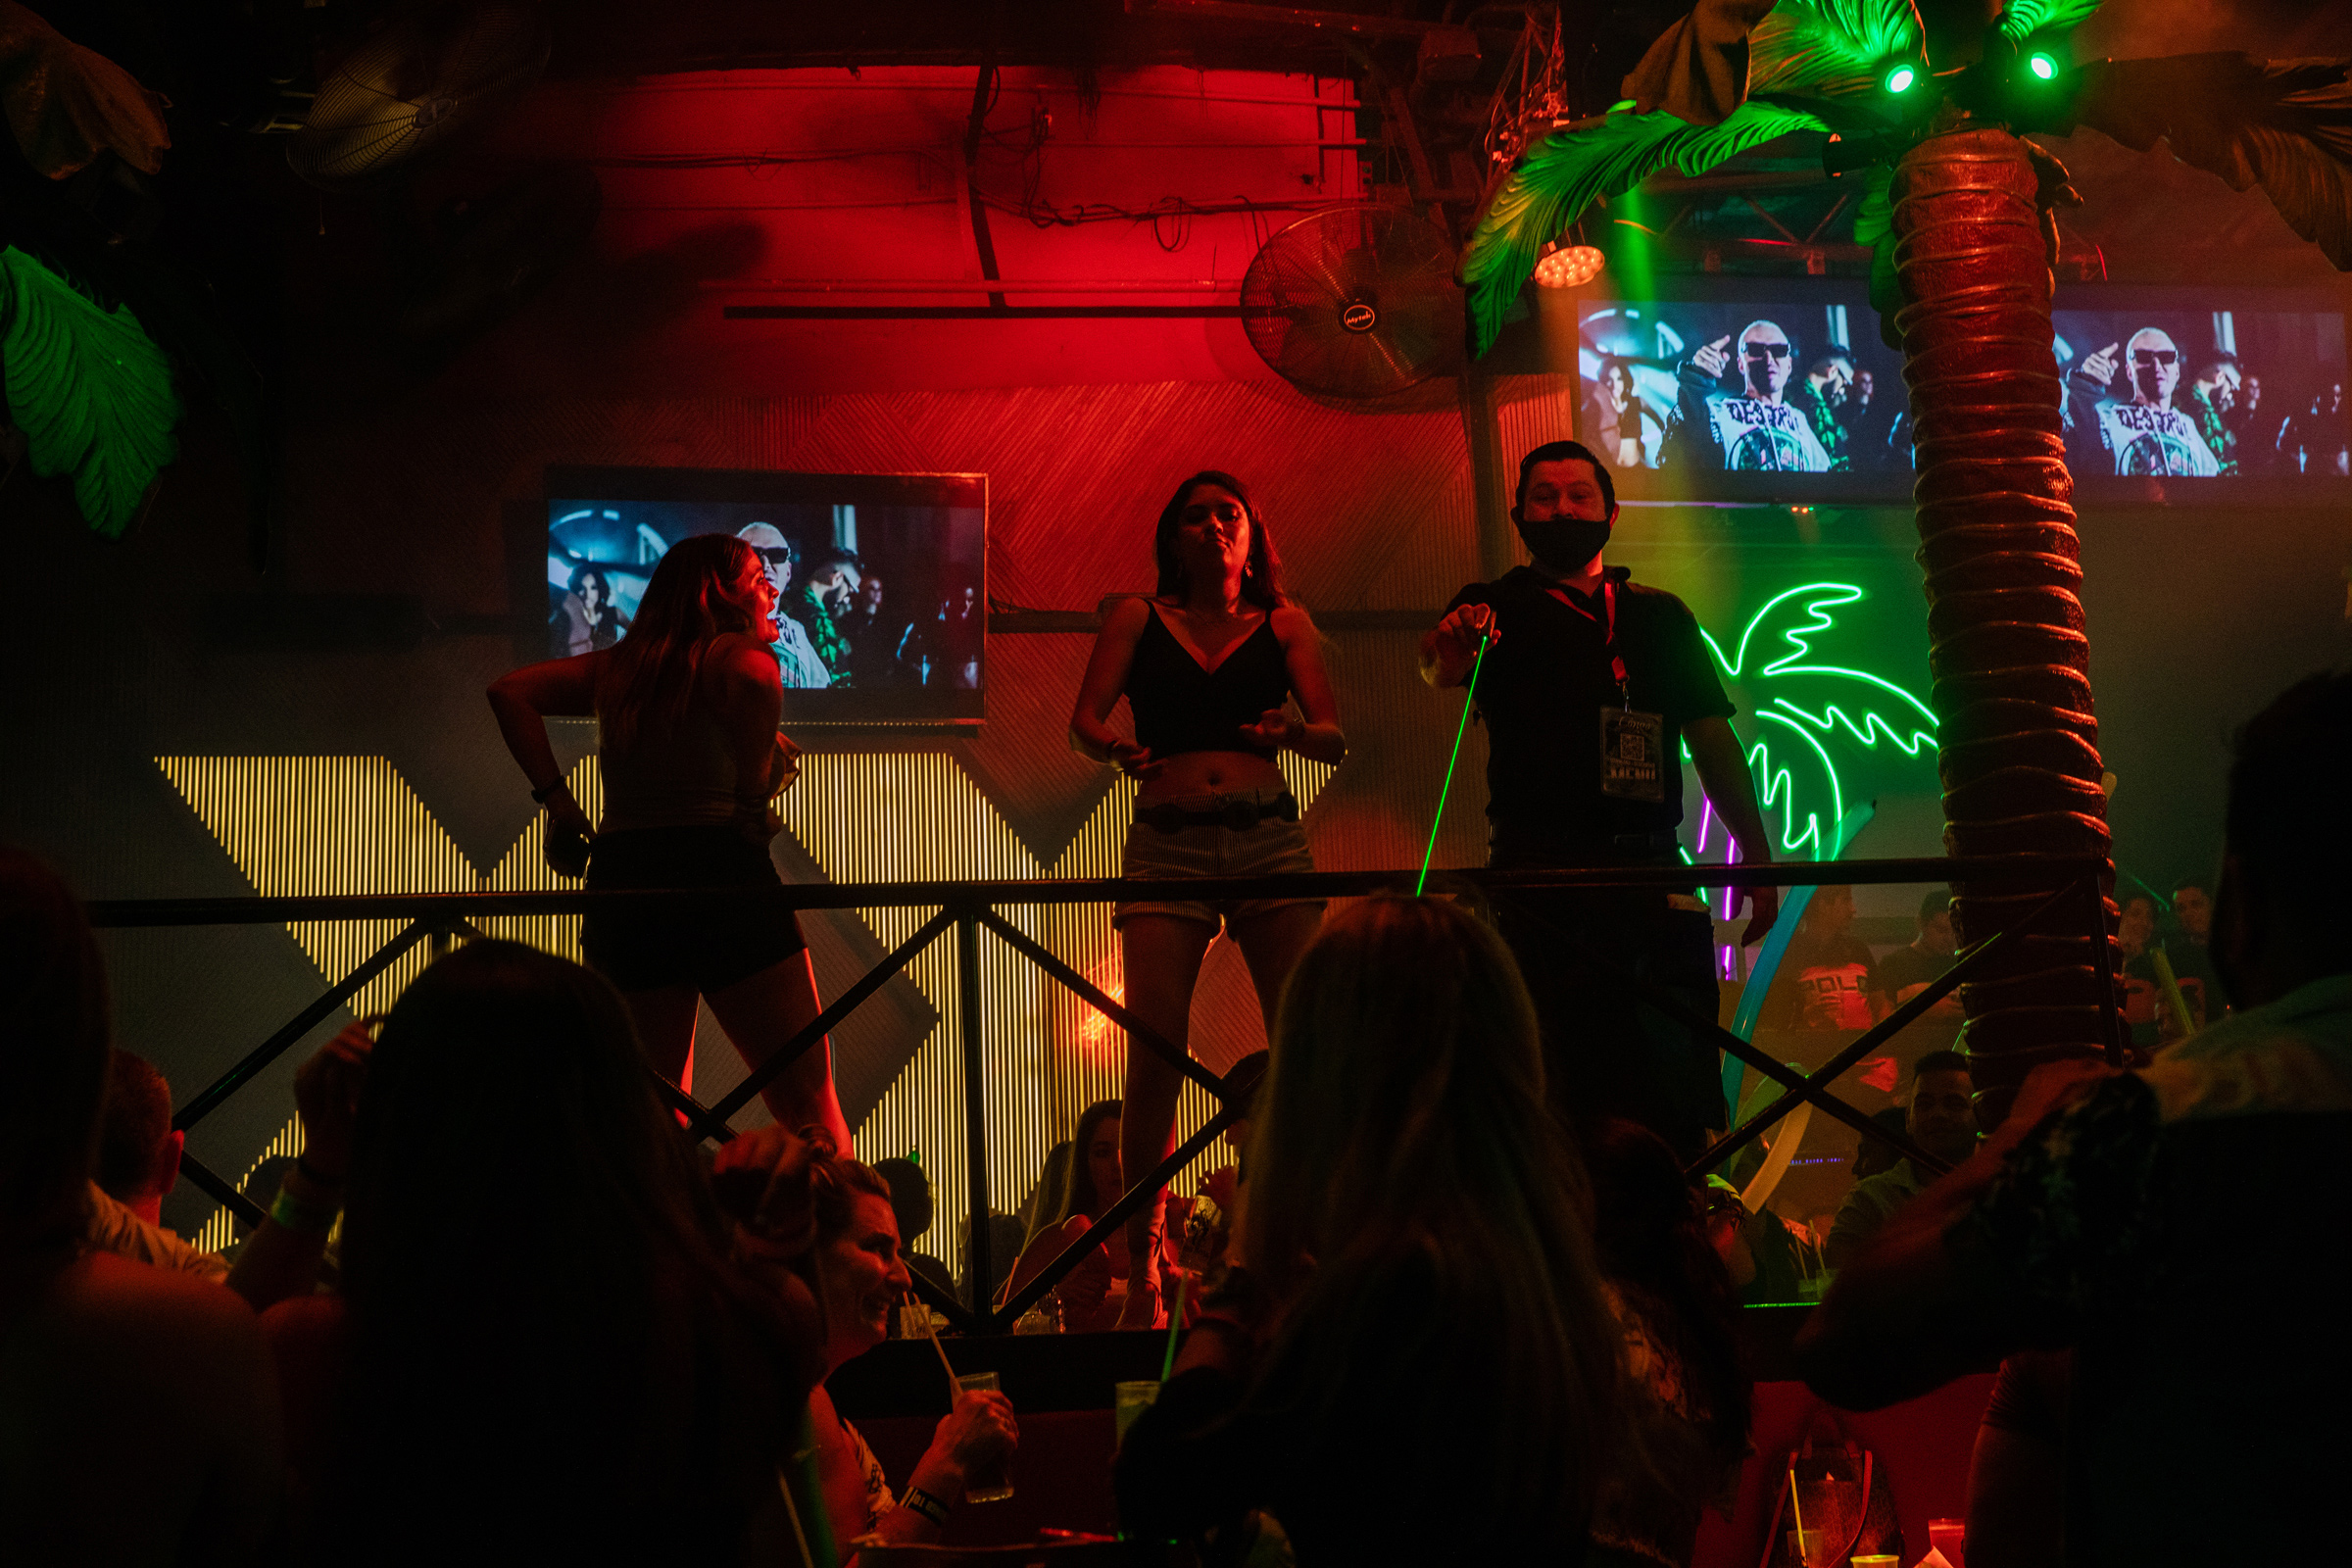 Revelers dance at a club in Cancún's nightlife district on Oct. 17. Despite the pandemic still raging in Mexico, few tourists wear masks when packed together inside the city's open-air clubs.